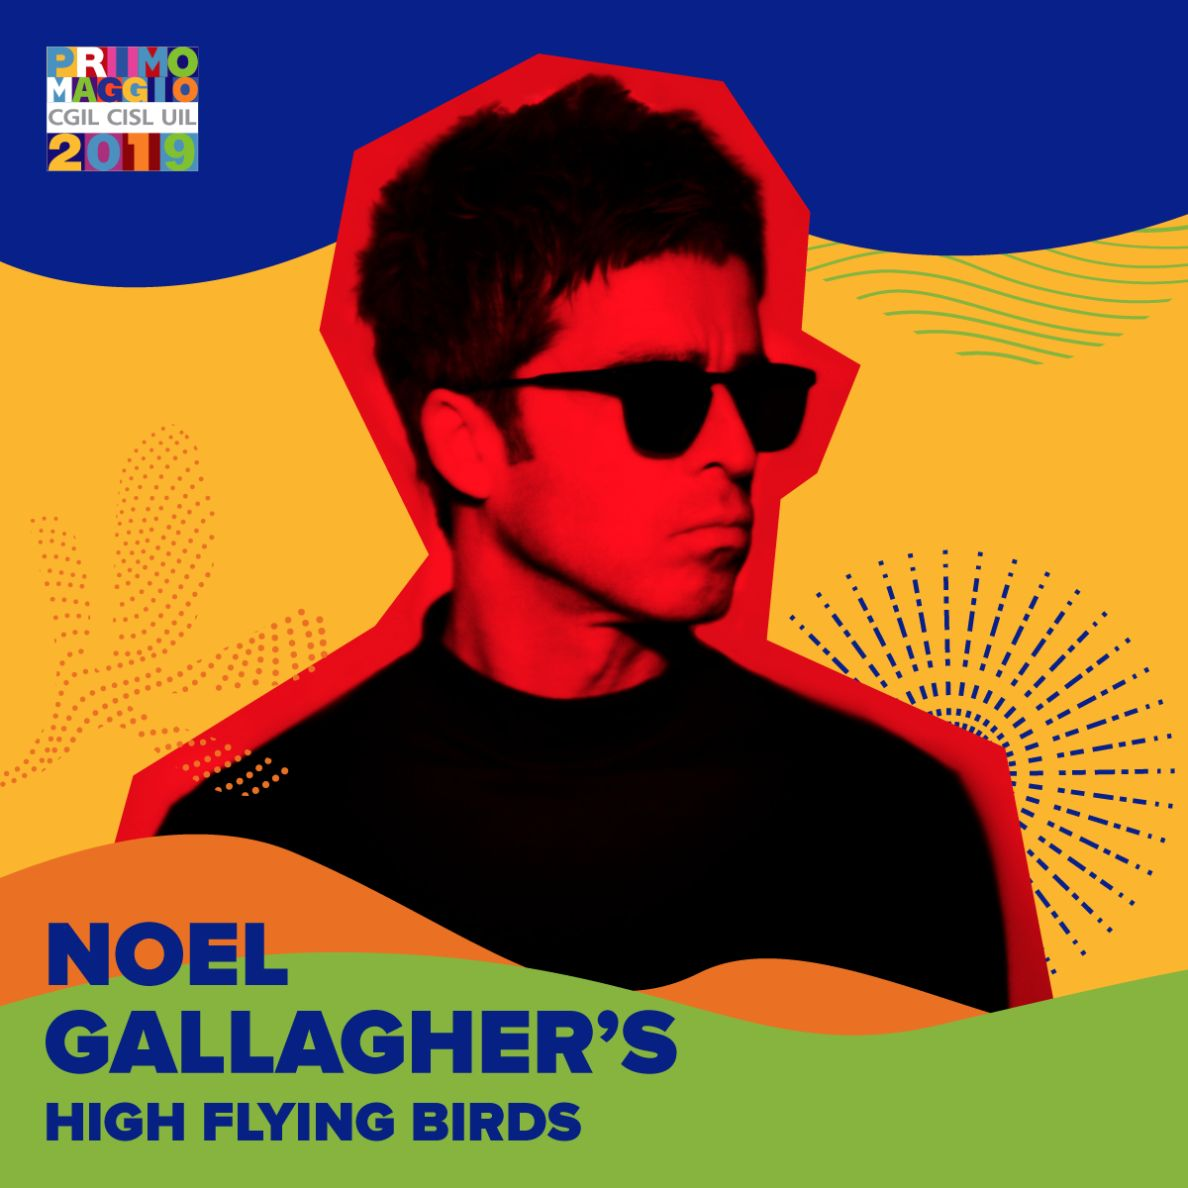 NOEL GALLAGHER'S HIGH FLYING BIRDS al CONCERTO DEL PRIMO MAGGIO 2019